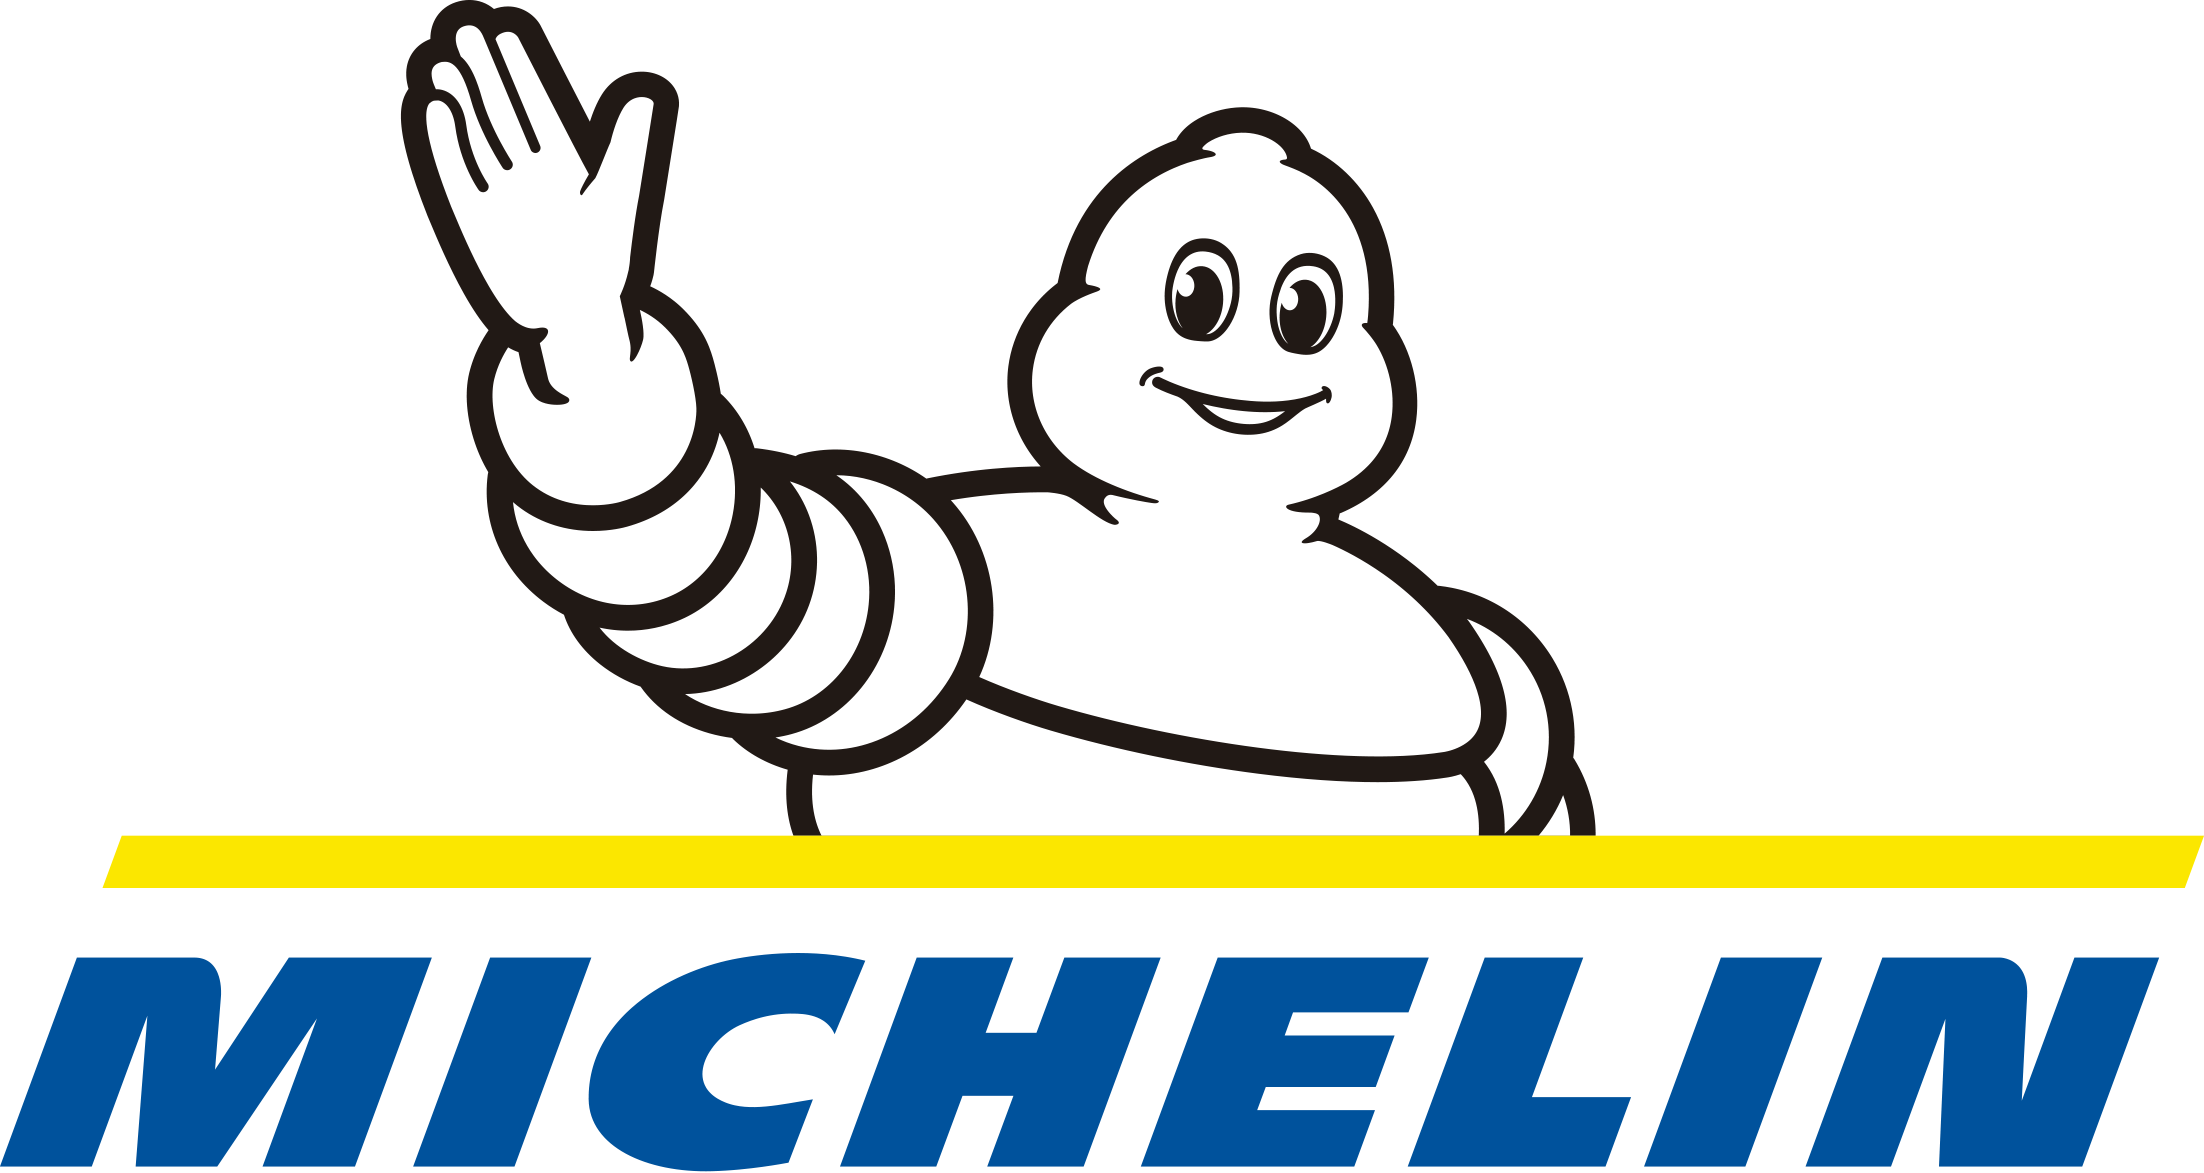 Michelin_C_S_WhiteBG_CMYK_0621